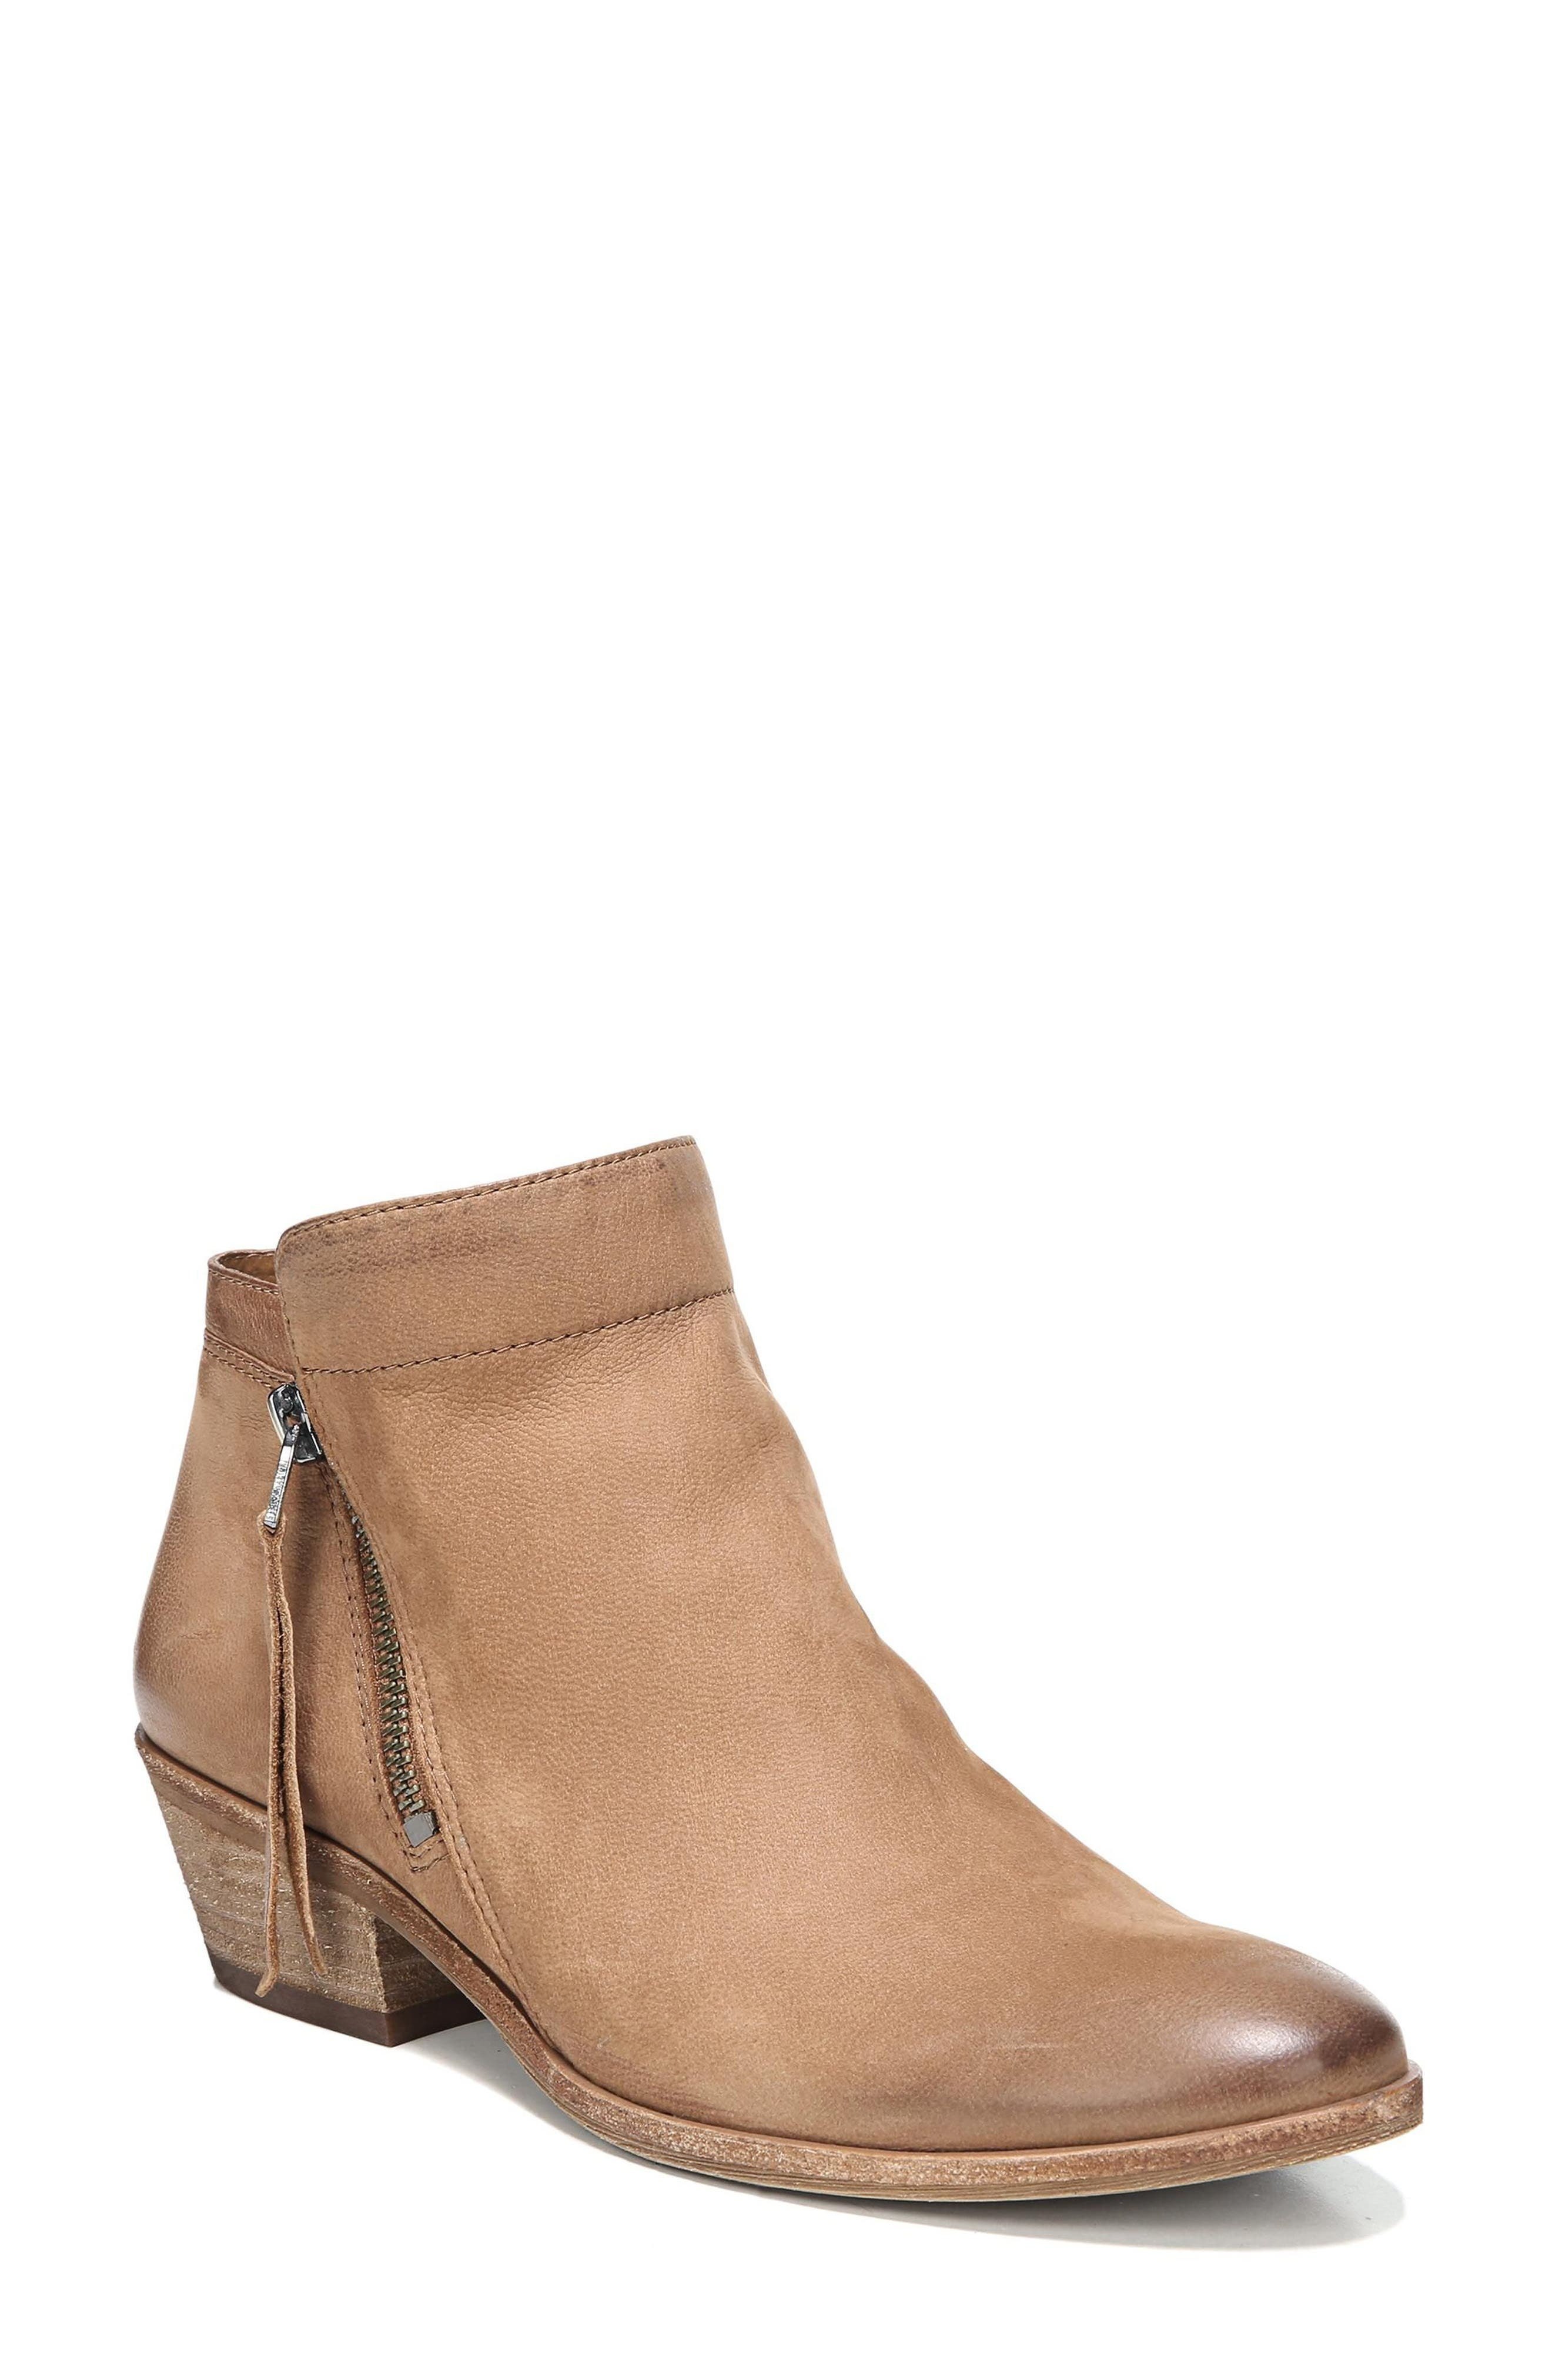 Sam Edelman Packer Bootie- Brown